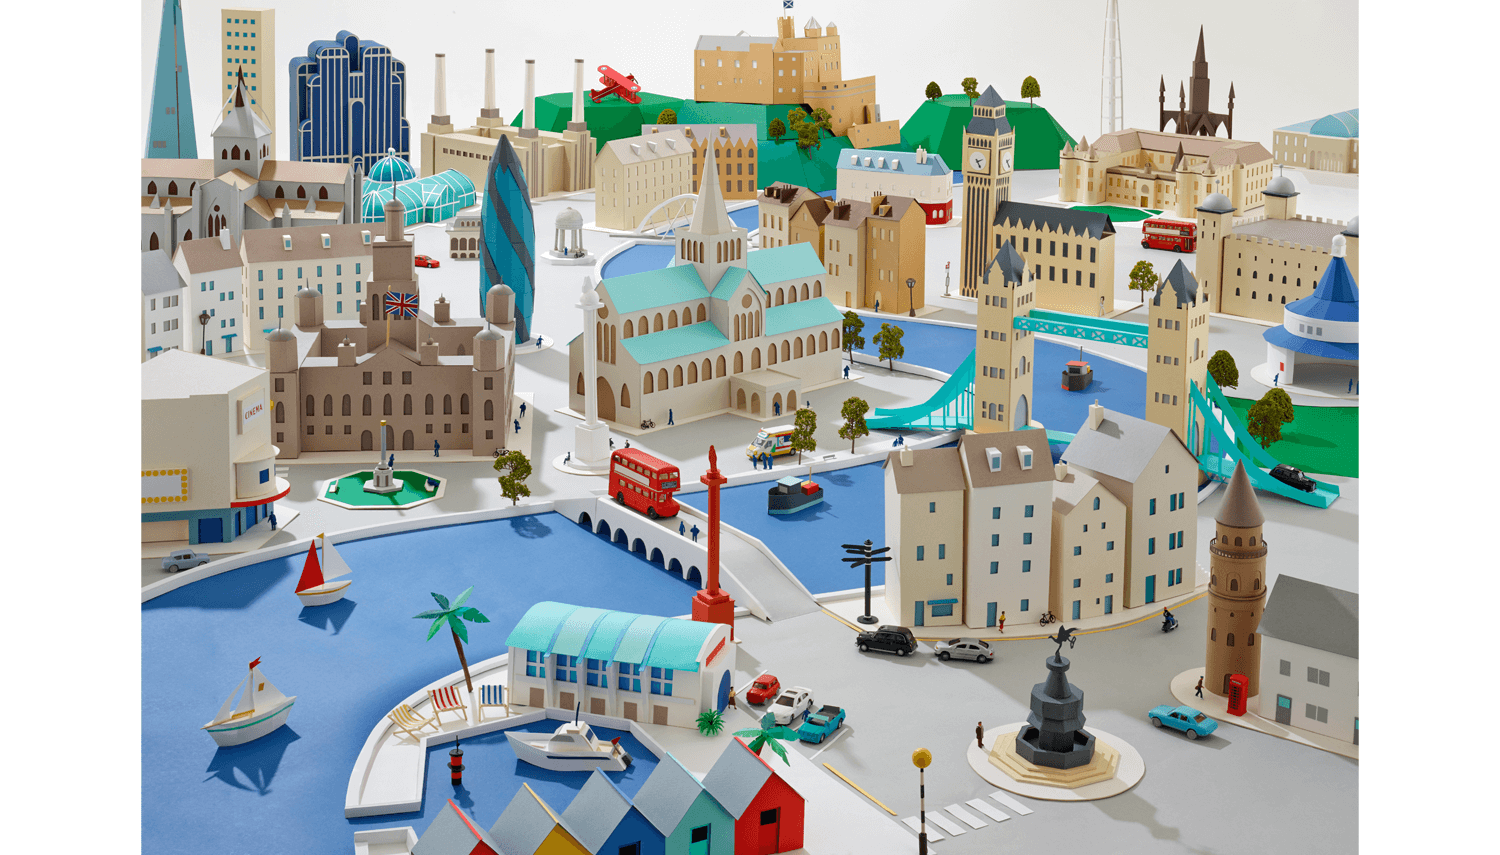 Pictures Of Toy Models Of Cities : Paper cities hattie newman